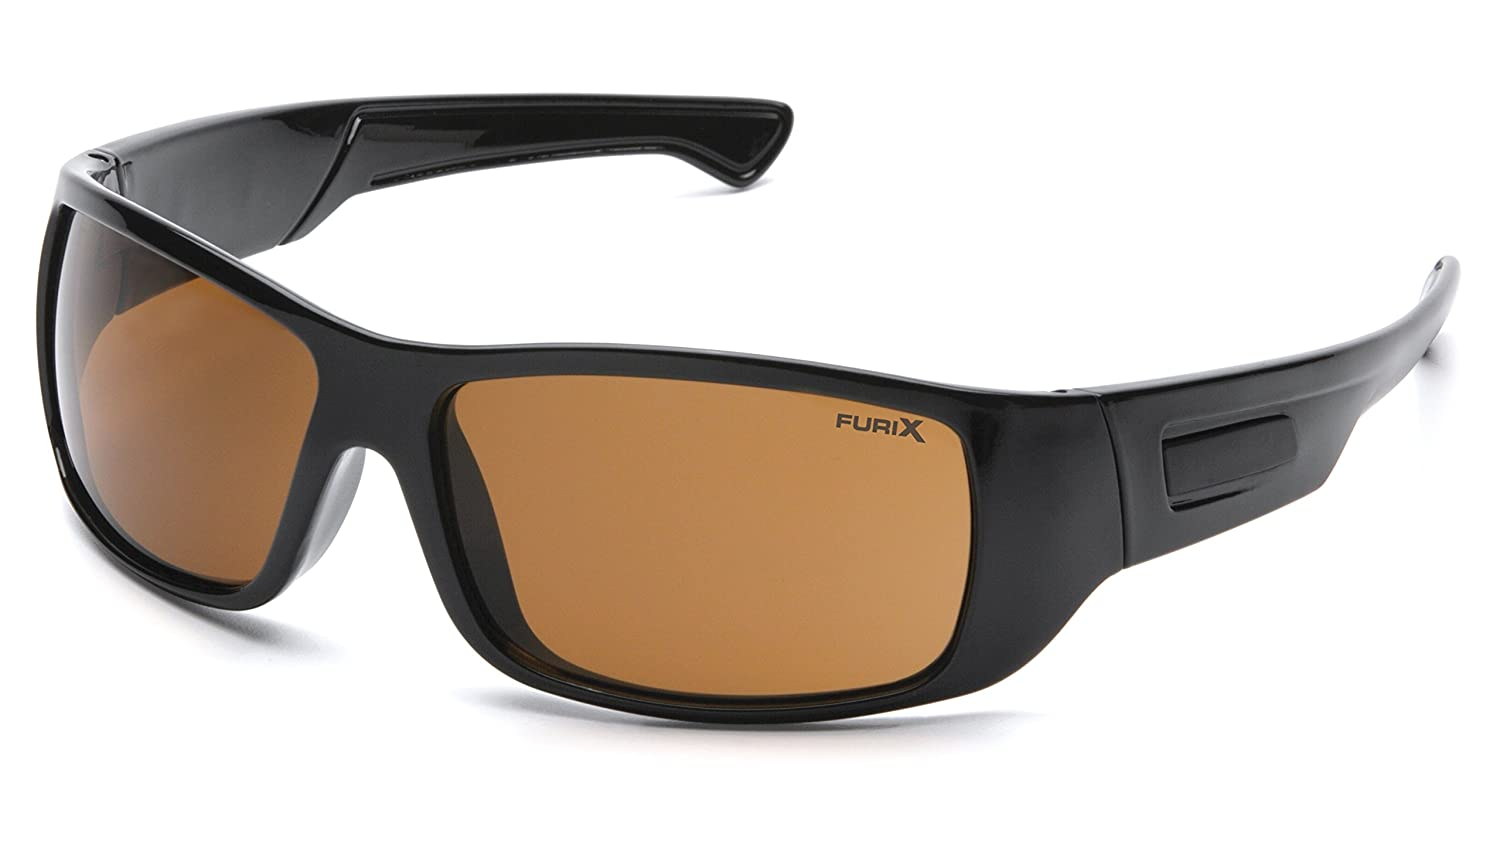 Pyramex Furix Safety Glasses, Black Frame/Coffee Anti-Fog Pyramex Safety SB8515DT